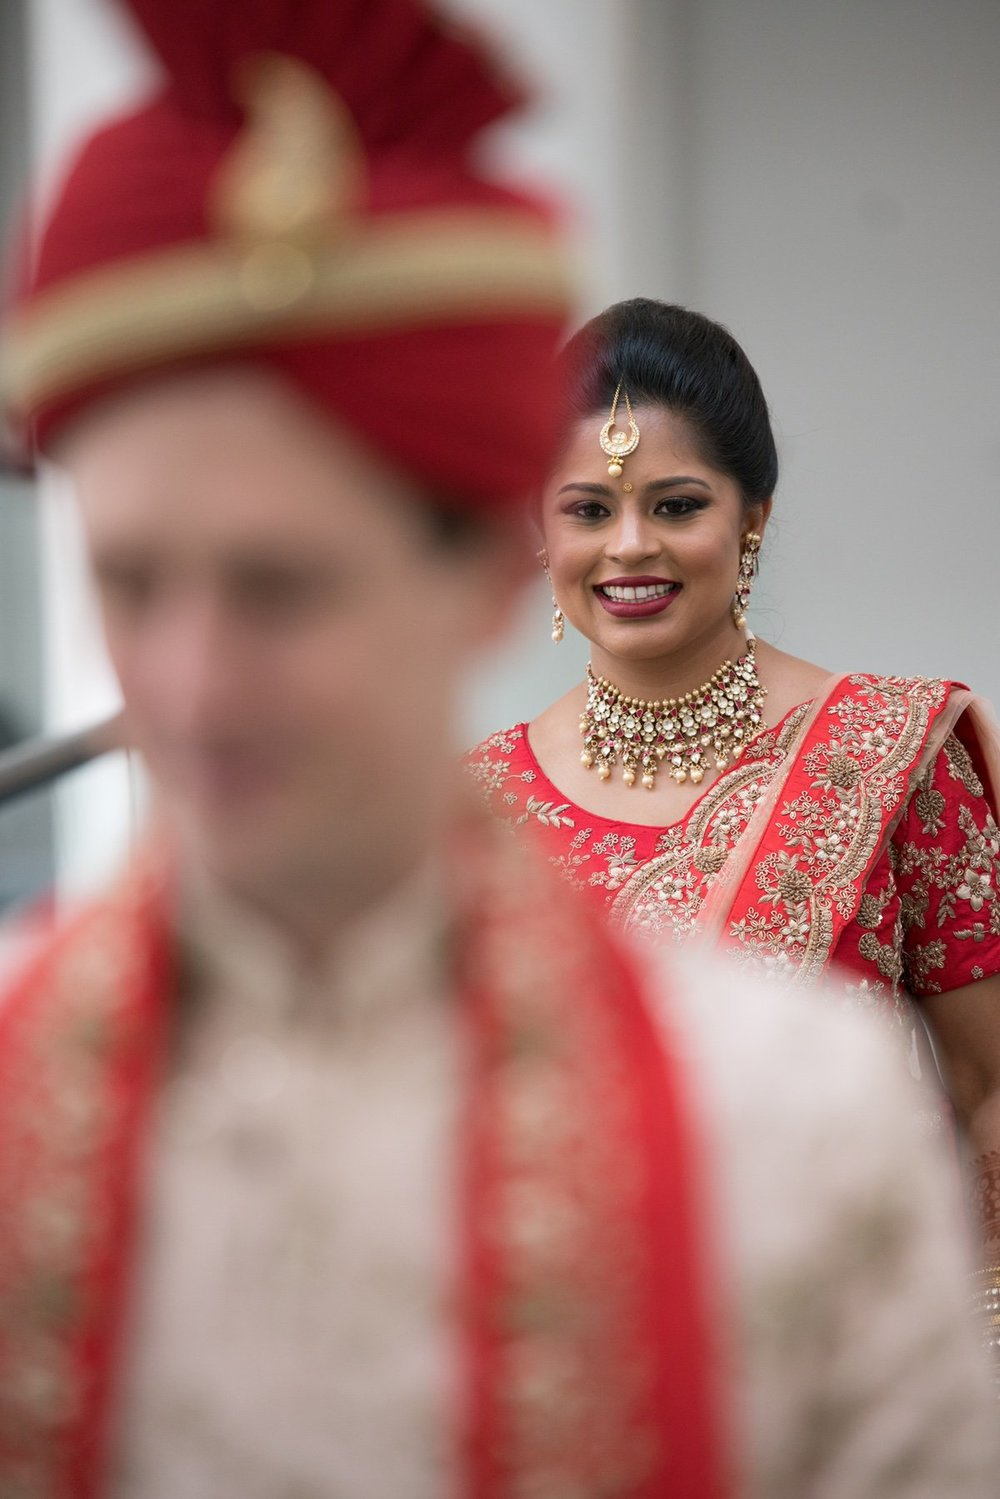 Le Cape Weddings - South Asian Wedding - Trisha and Jordan - First Look --20.jpg